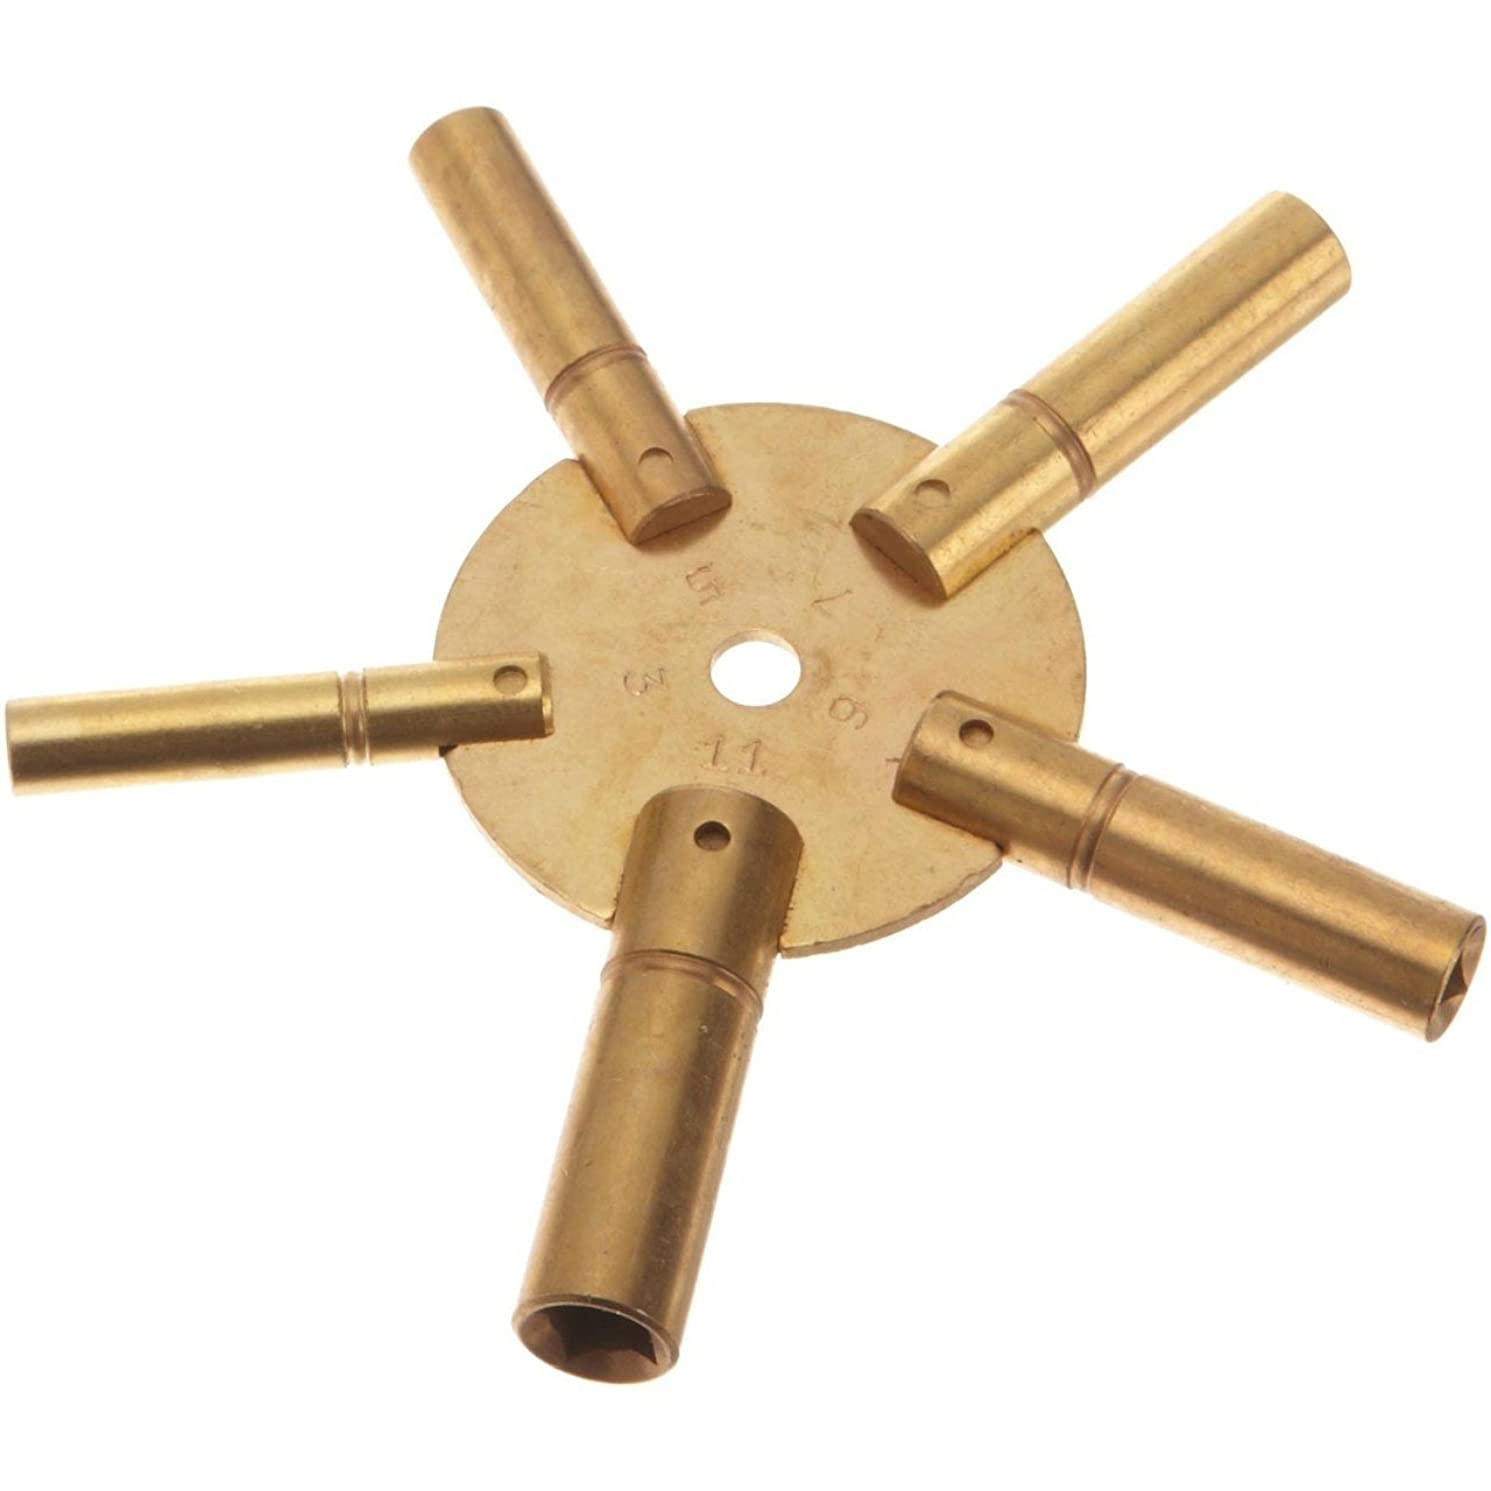 Brass Blessing : Brass Clock Winding Key 5 Prong odd Numbers 5 in 1 (1 key) (5023)